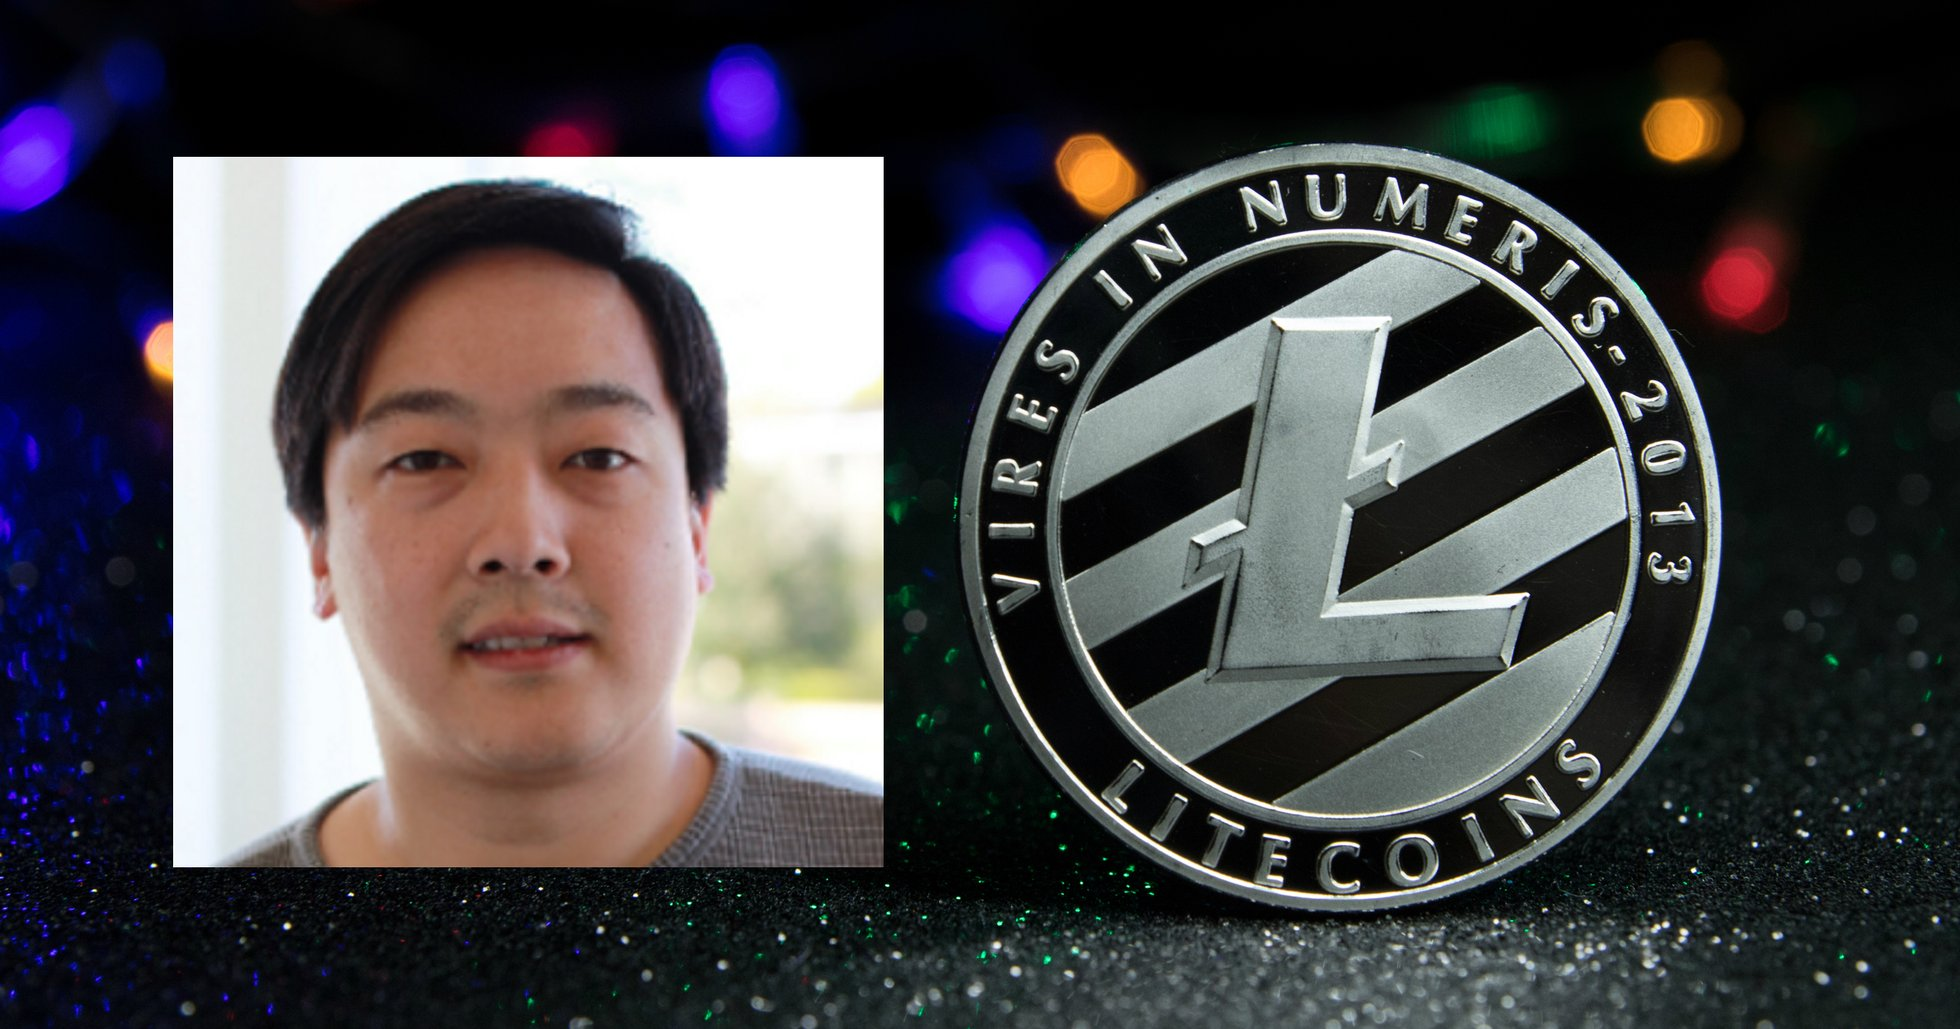 After financial problems – litecoin founder Charlie Lee vows to keep donating to the foundation.